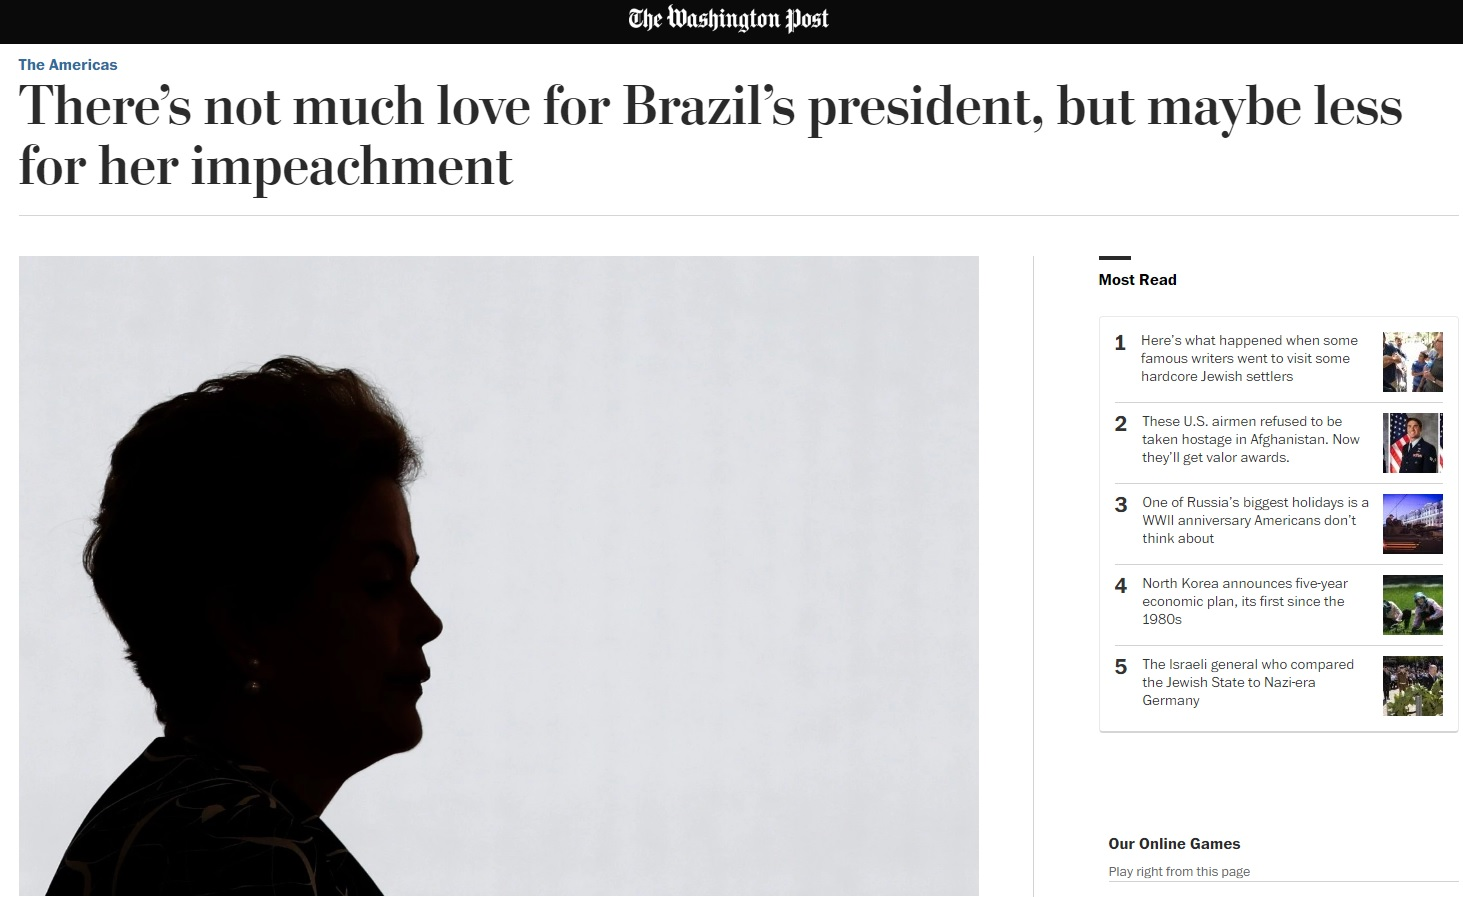 'Washington Post': Impeachment pode ser desvio rumo à disfunção política